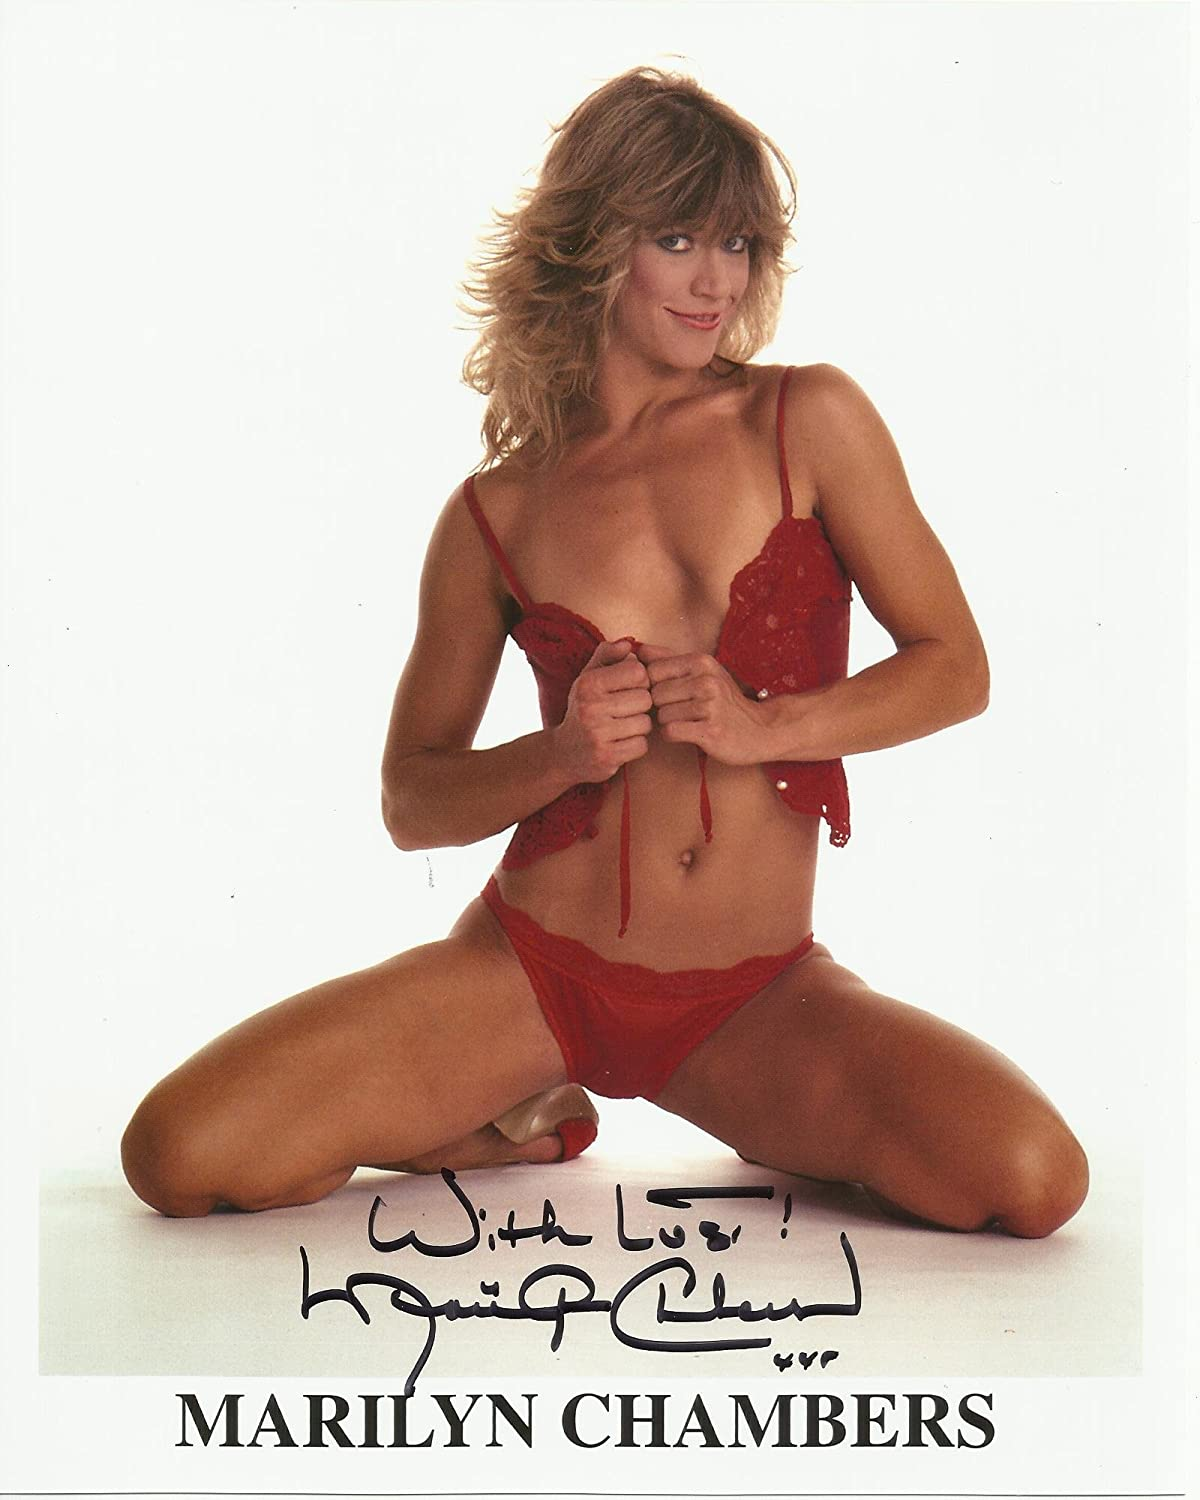 Marilyn chambers pic hot nsfw galleries